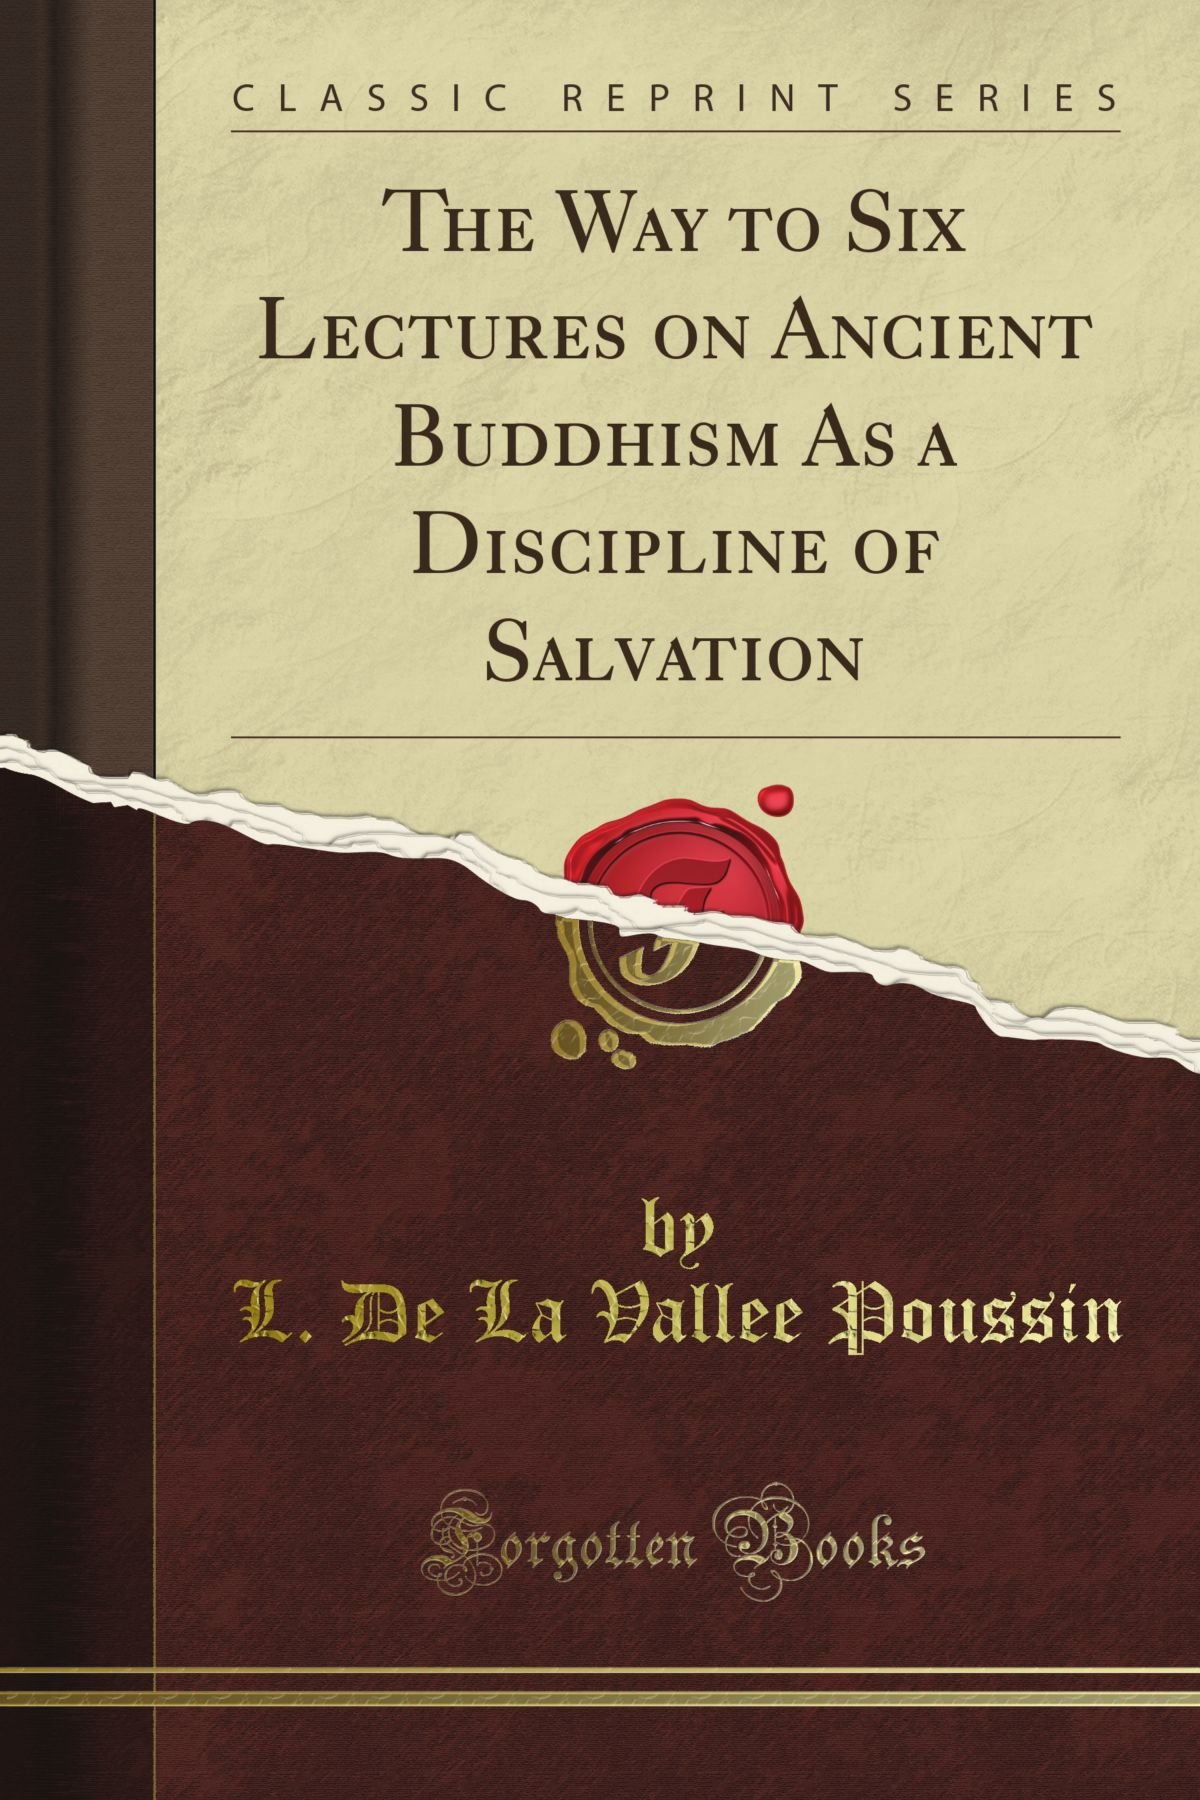 The Way to Six Lectures on Ancient Buddhism As a Discipline of Salvation (Classic Reprint) PDF